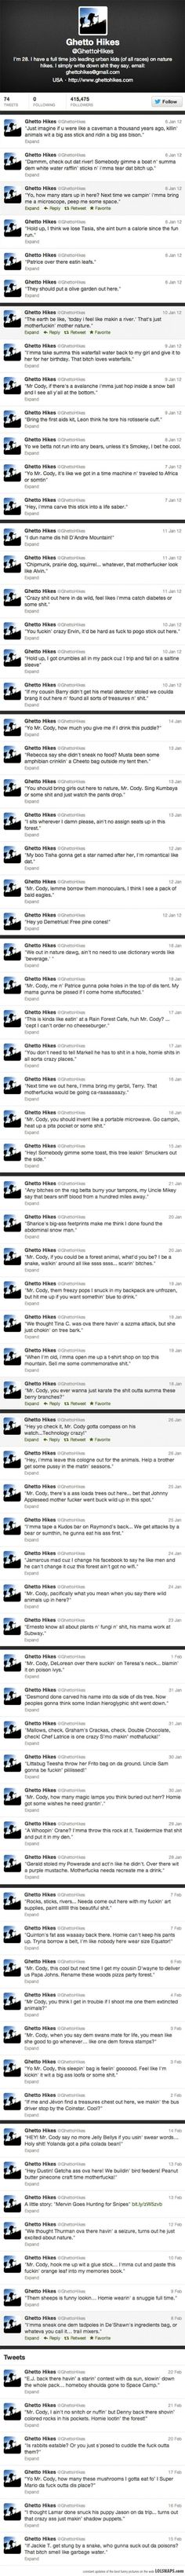 Ghetto hikes-a guy who takes inner city kids on hikes and simply tweets exactly what they say. This is glorious.